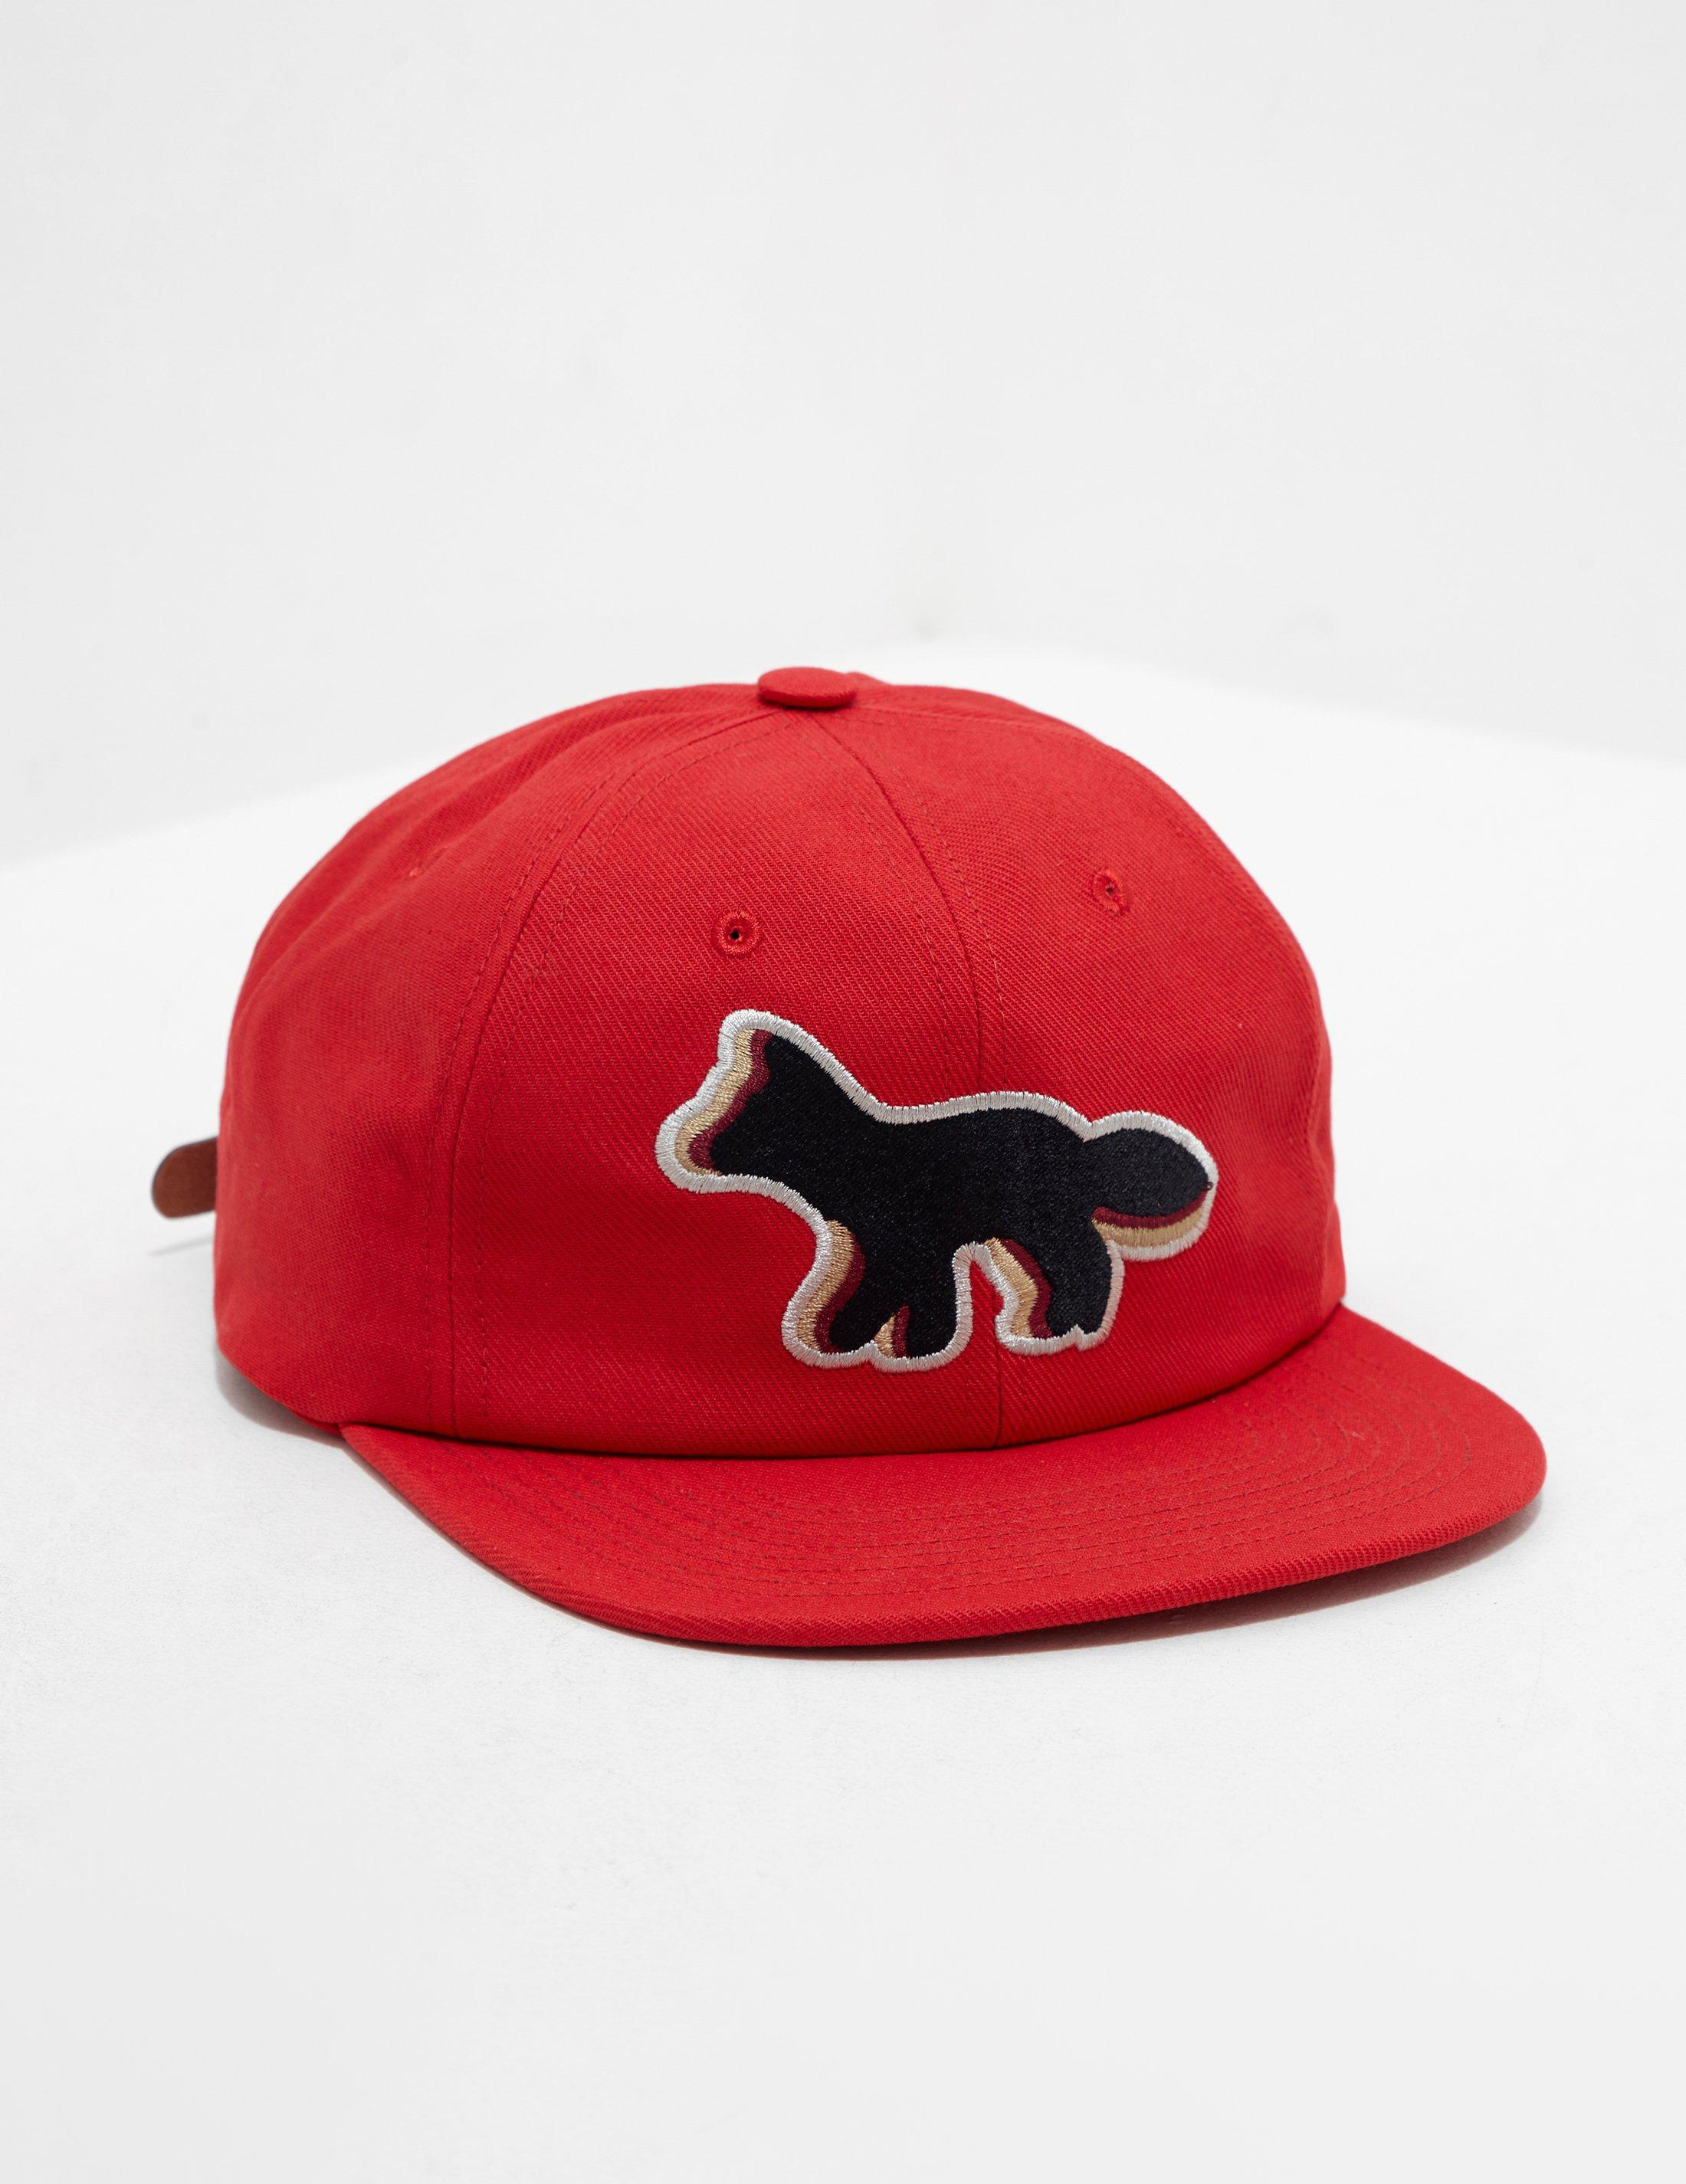 82a685739c1e32 Maison Kitsuné Mens Fox Cap - Online Exclusive Red in Red for Men - Lyst